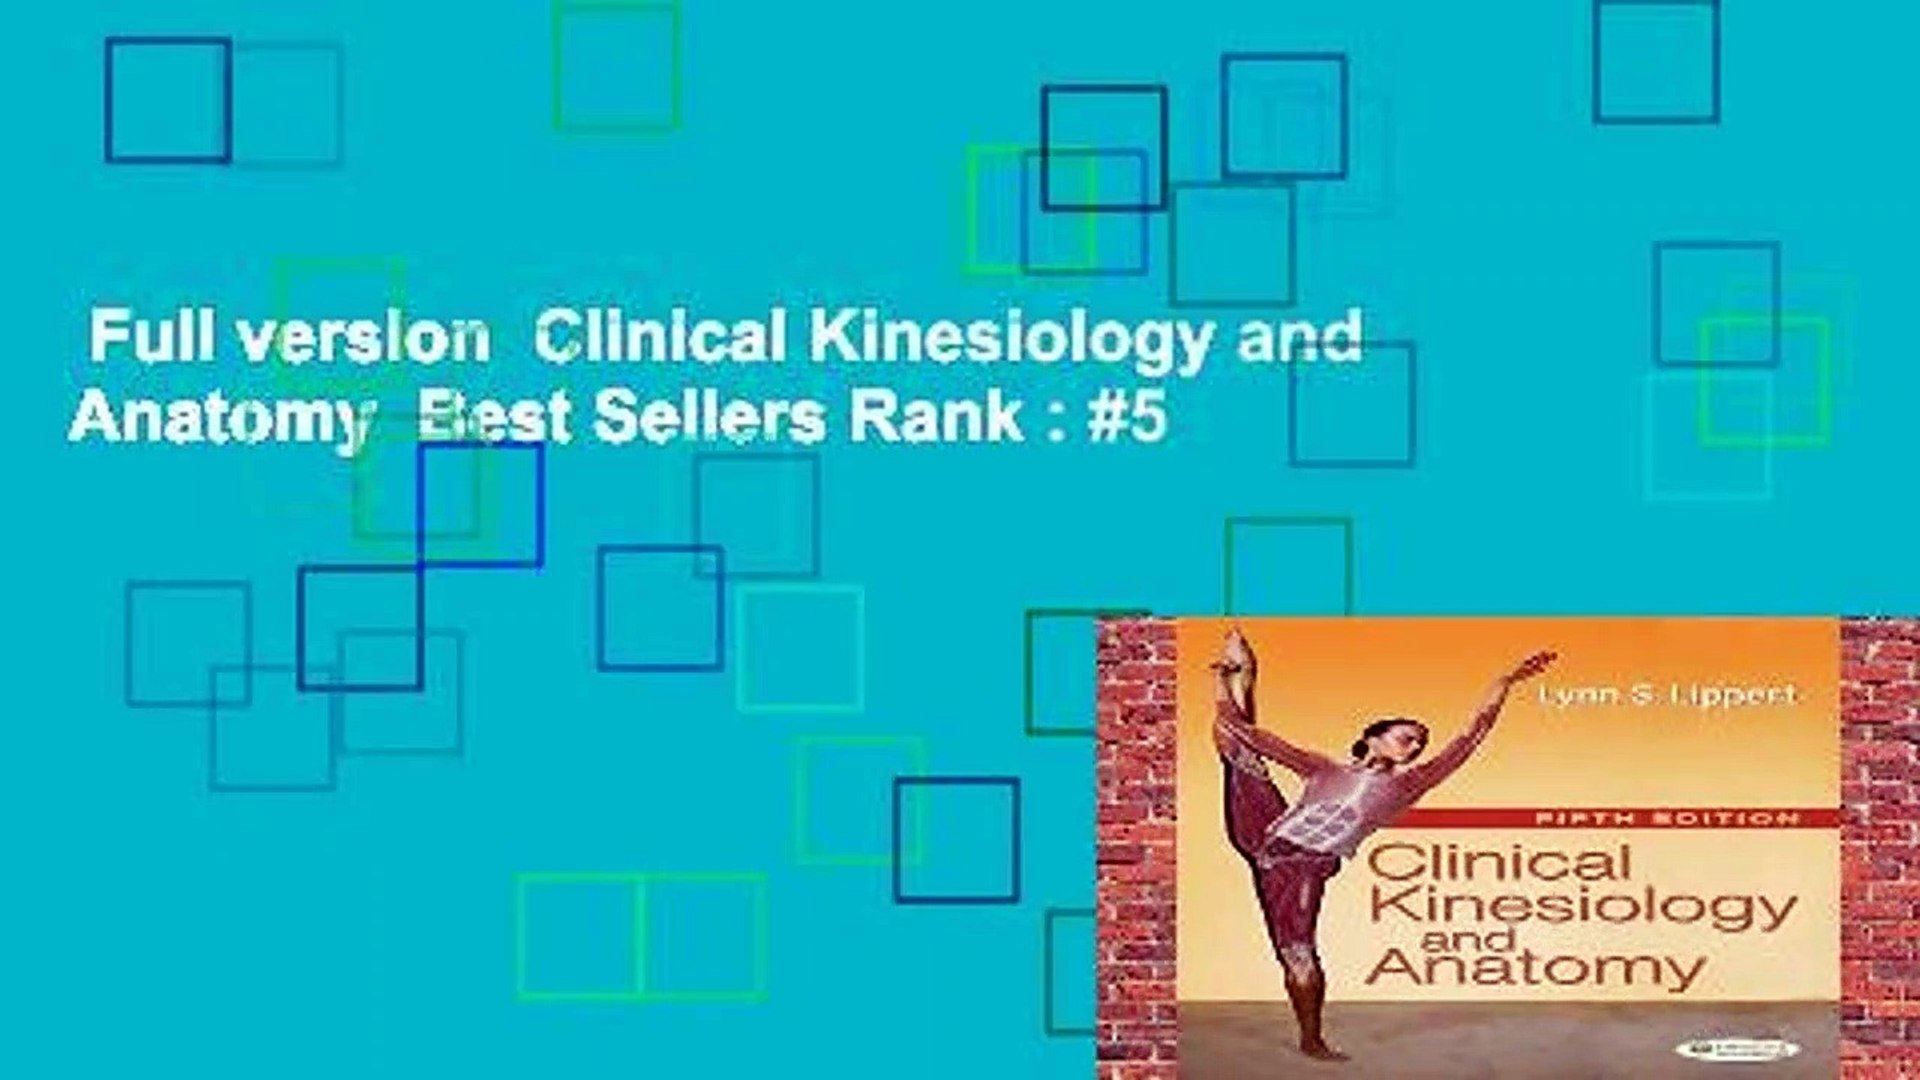 Full version Clinical Kinesiology and Anatomy Best Sellers Rank 1920x1080